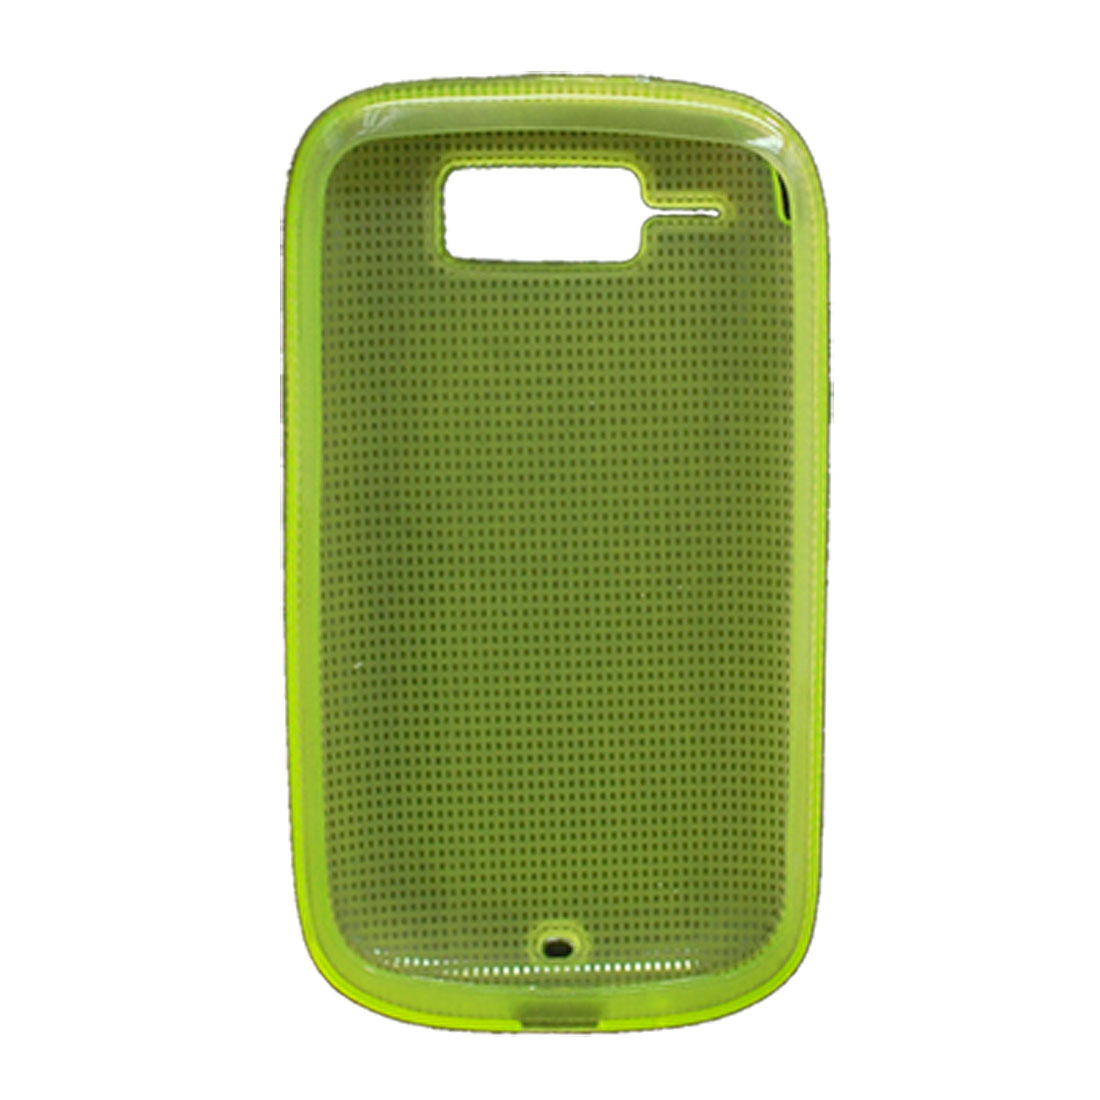 Kelly Soft Plastic Case for HTC T4242 Cruise